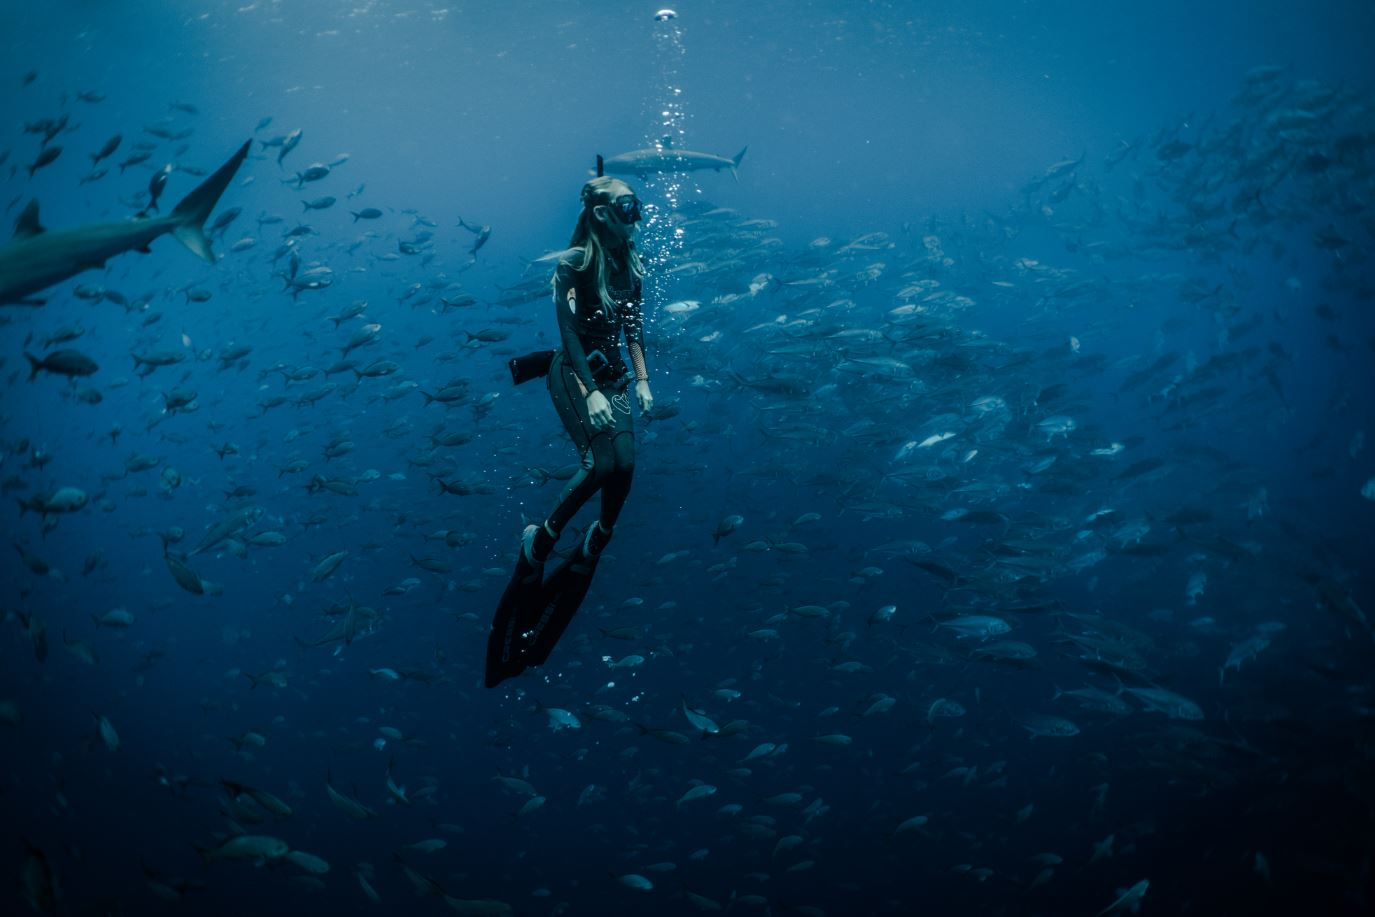 Snorkeling with fish in the Galapagos Islands.